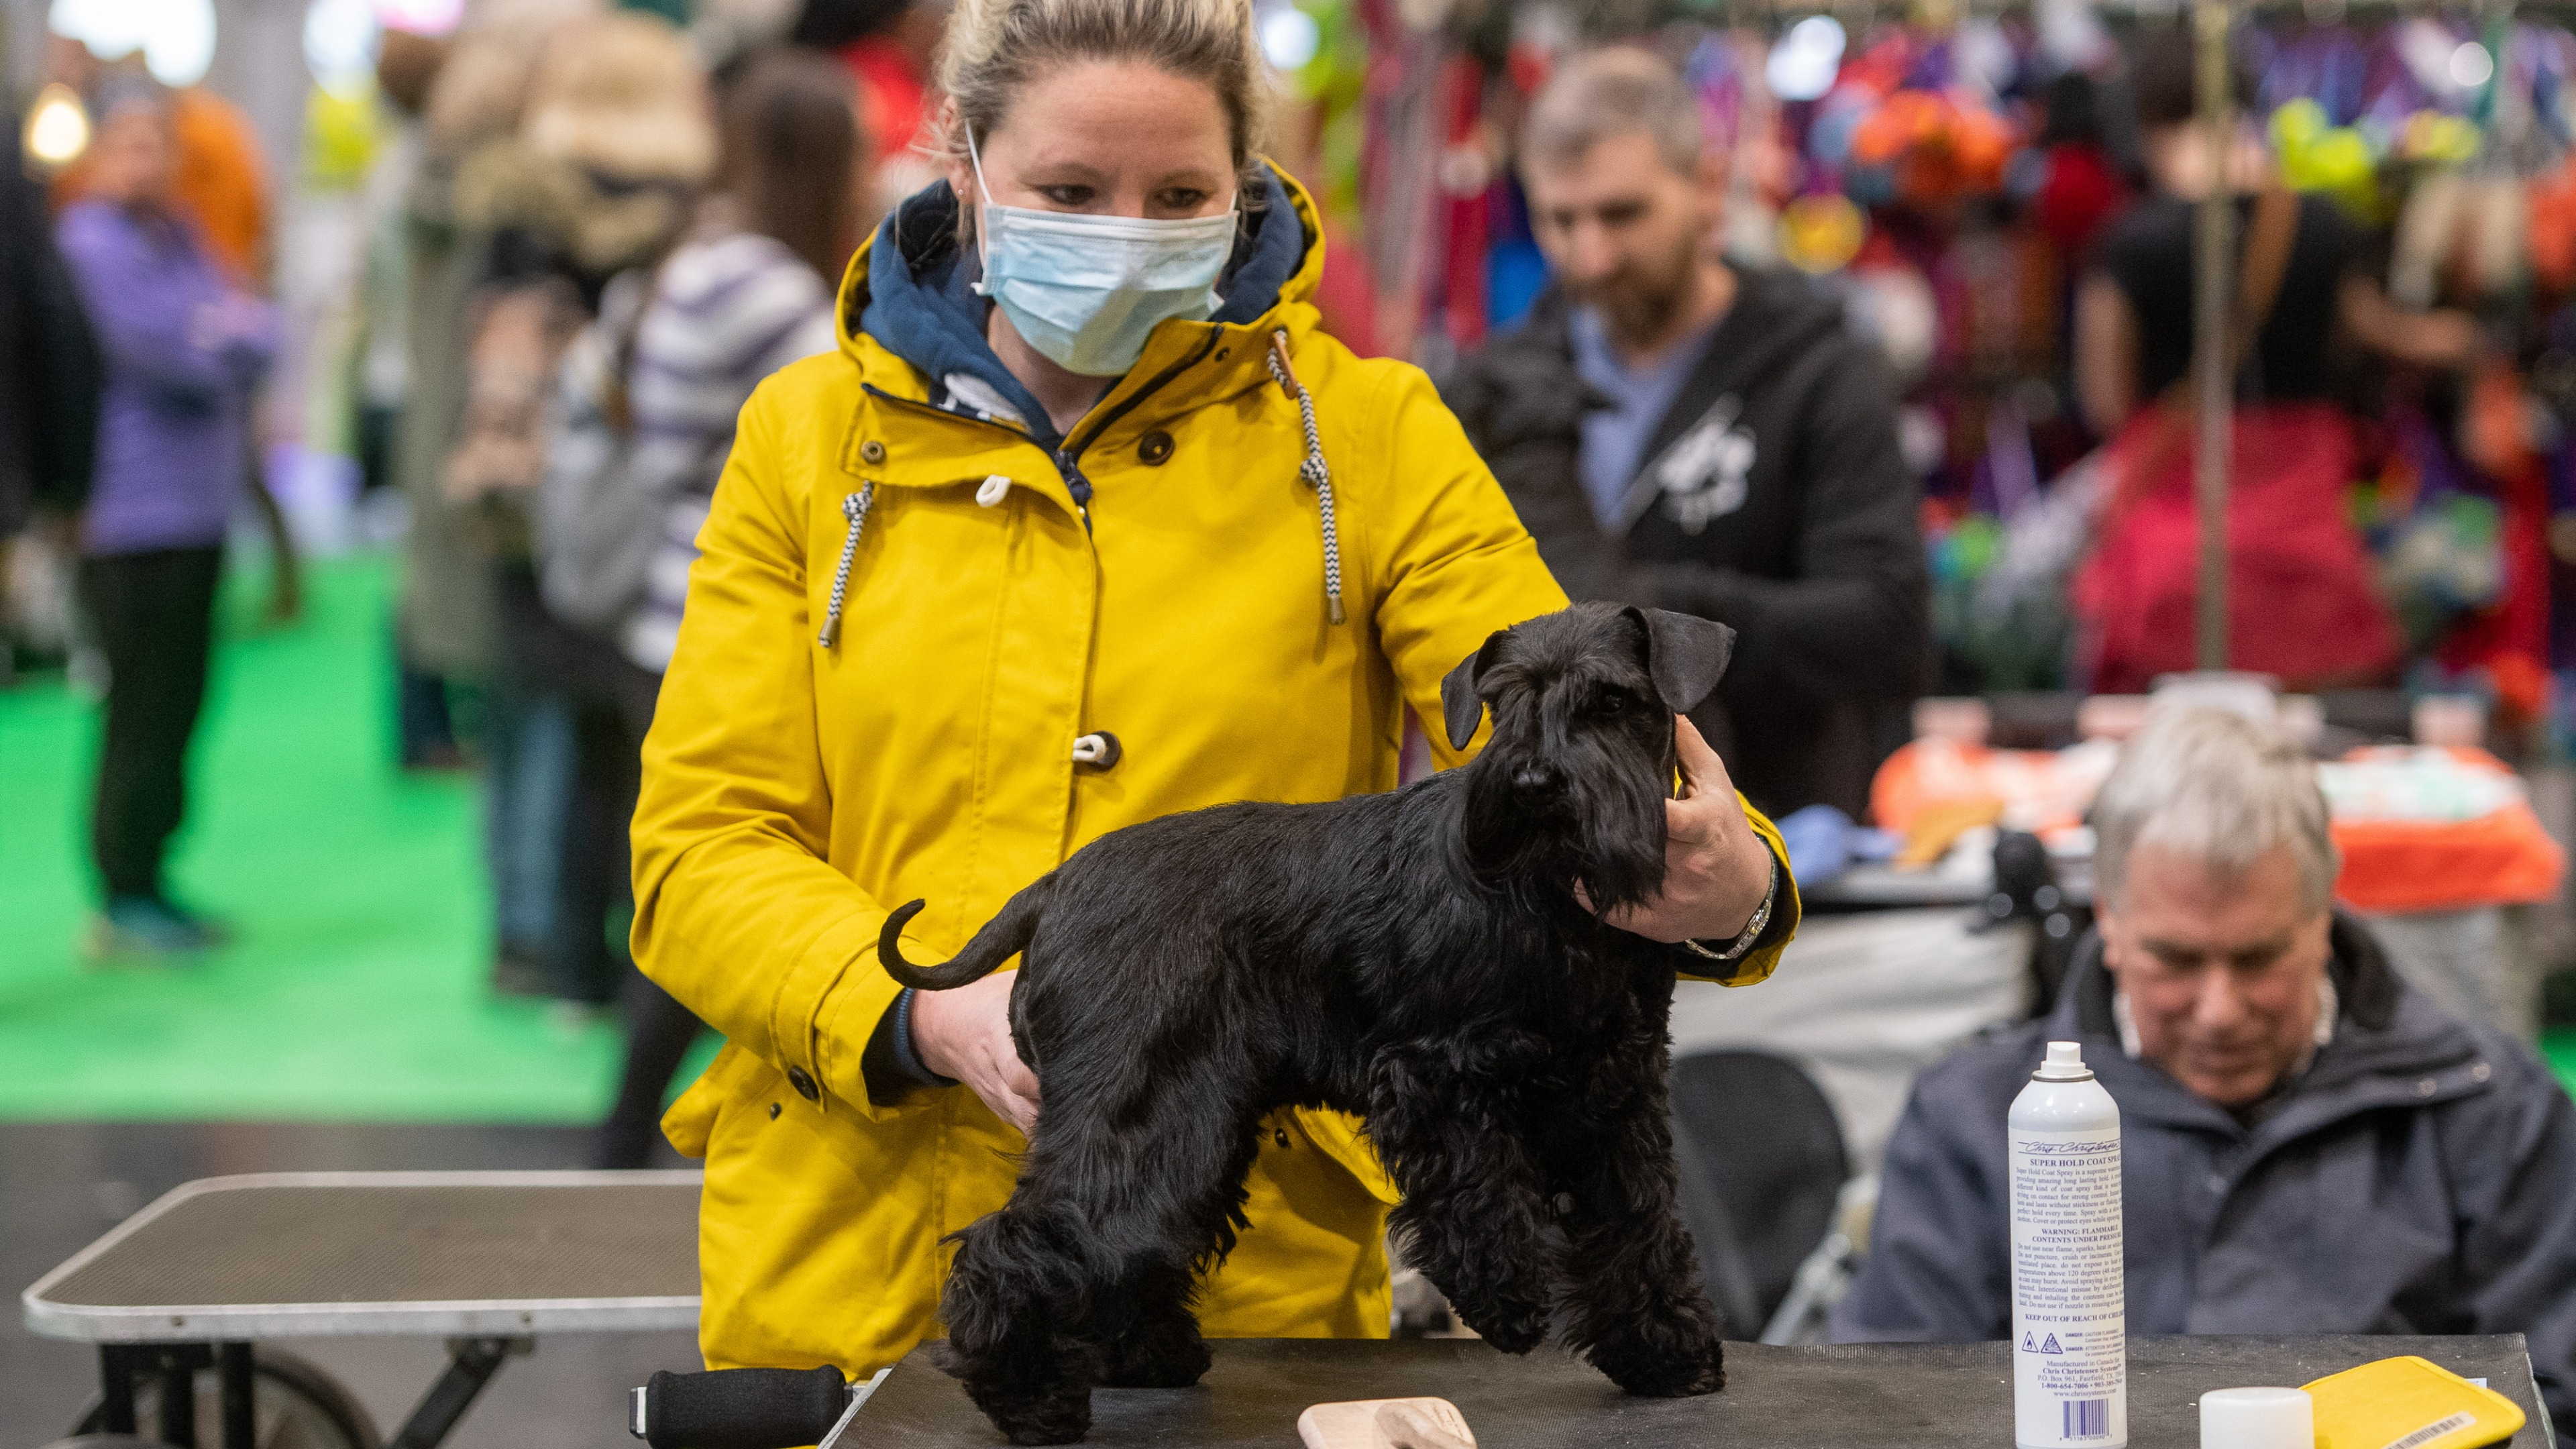 Coronavirus Q A 15 Questions On Work Dog Grooming And Allotments Answered Itv News